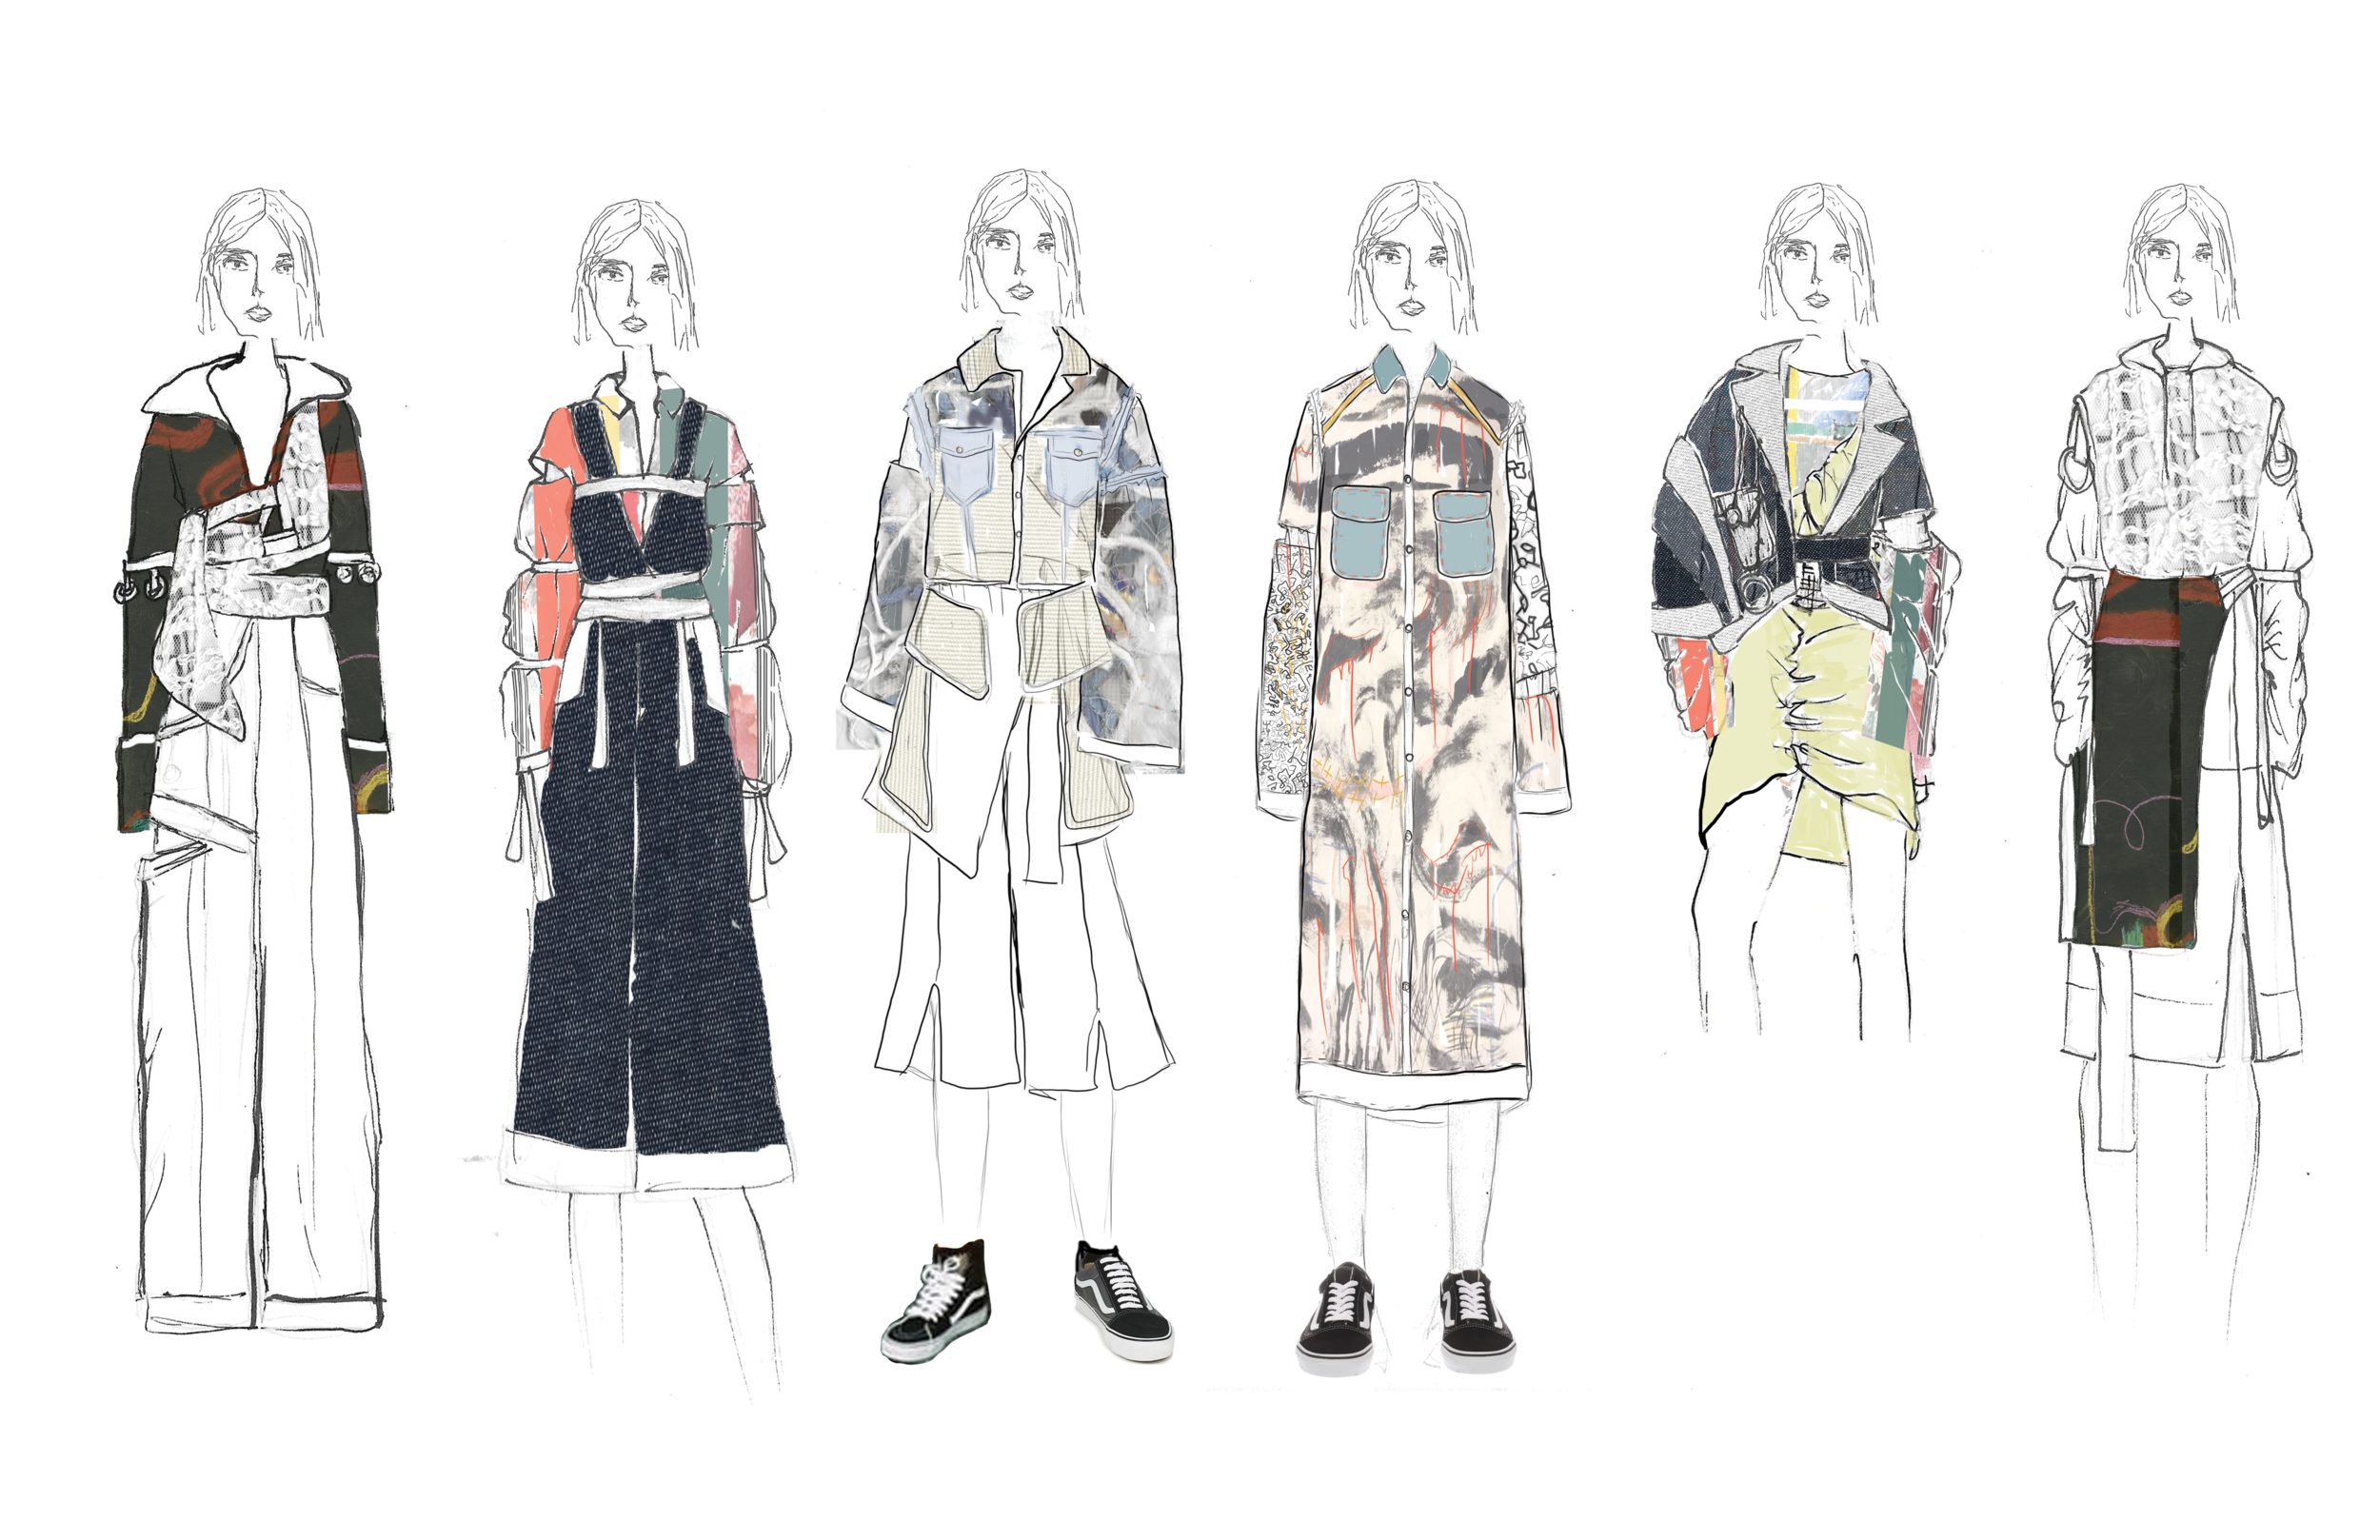 Illustration and flats by fashion designer Steph Asanza